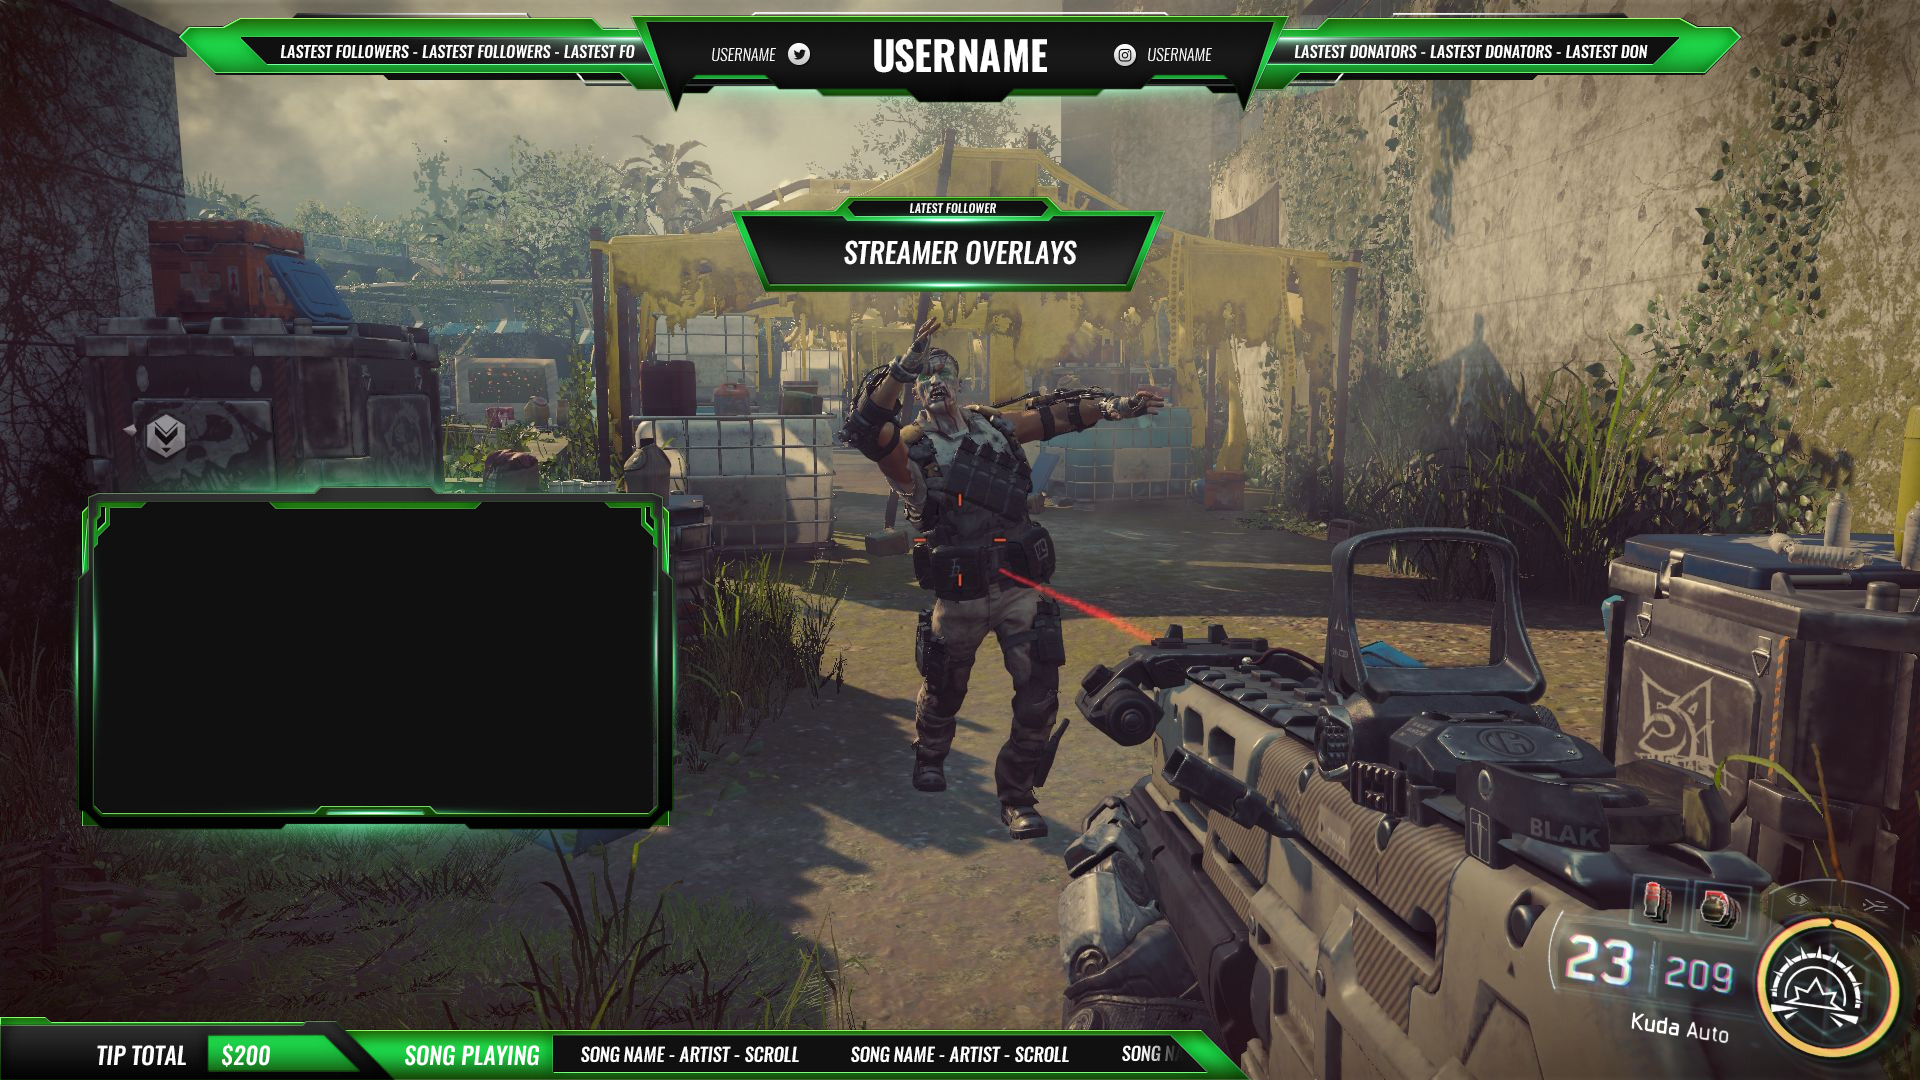 Green twitch overlay package Streamer Overlays